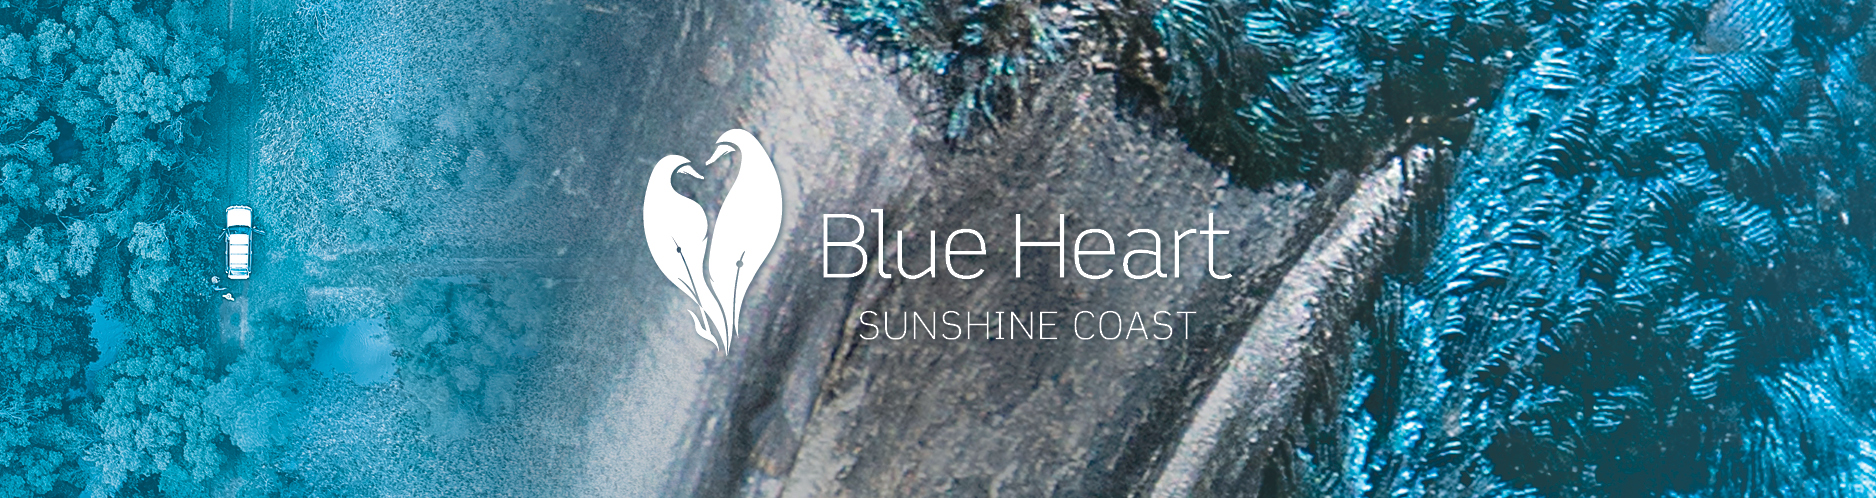 Blue Heart Sunshine Coast